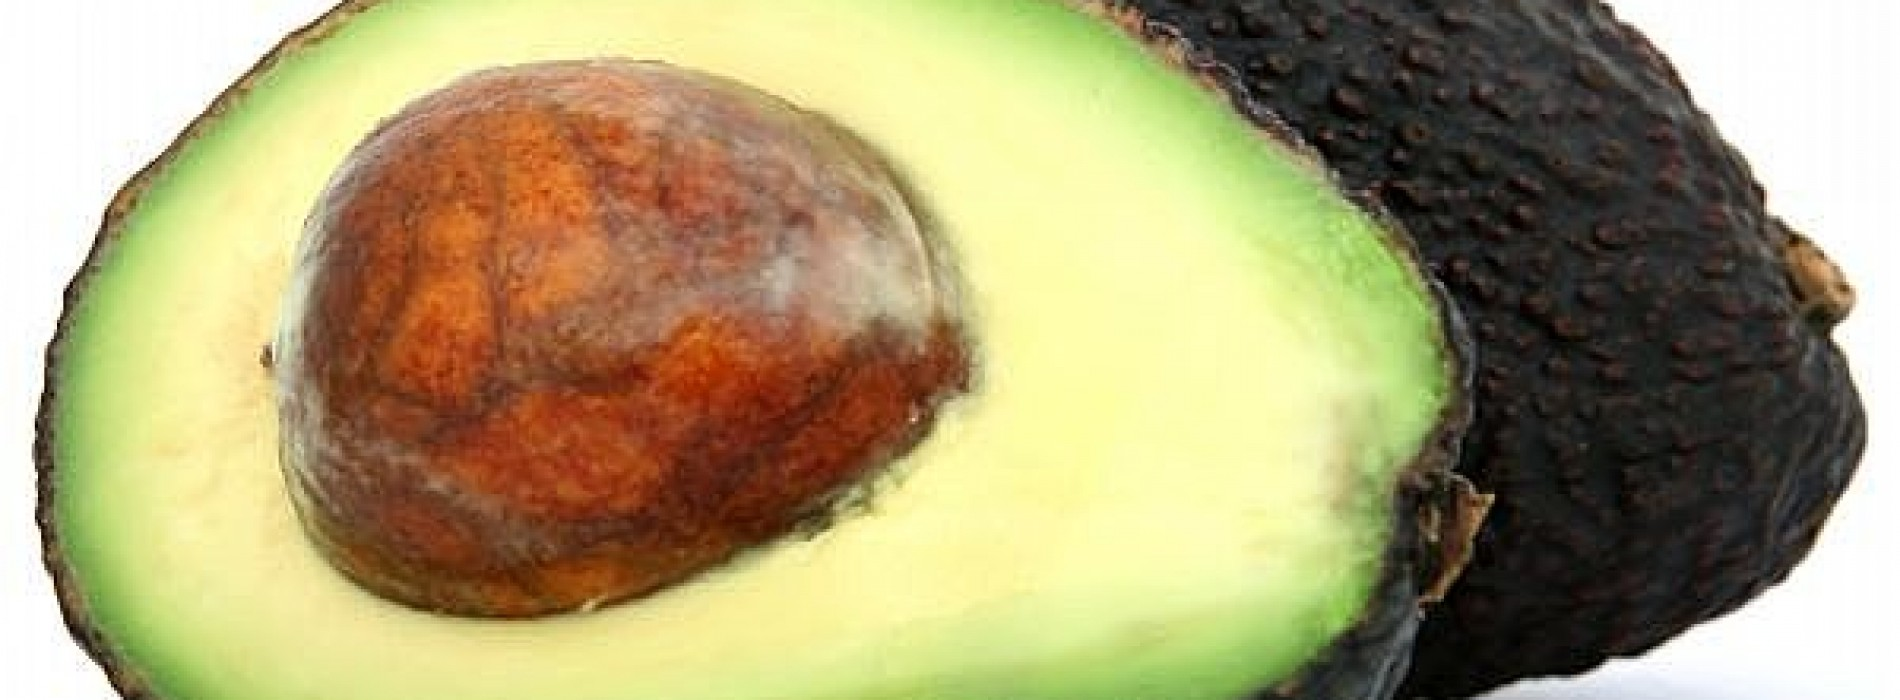 Vitamin Week: What's So Great About…Avocado